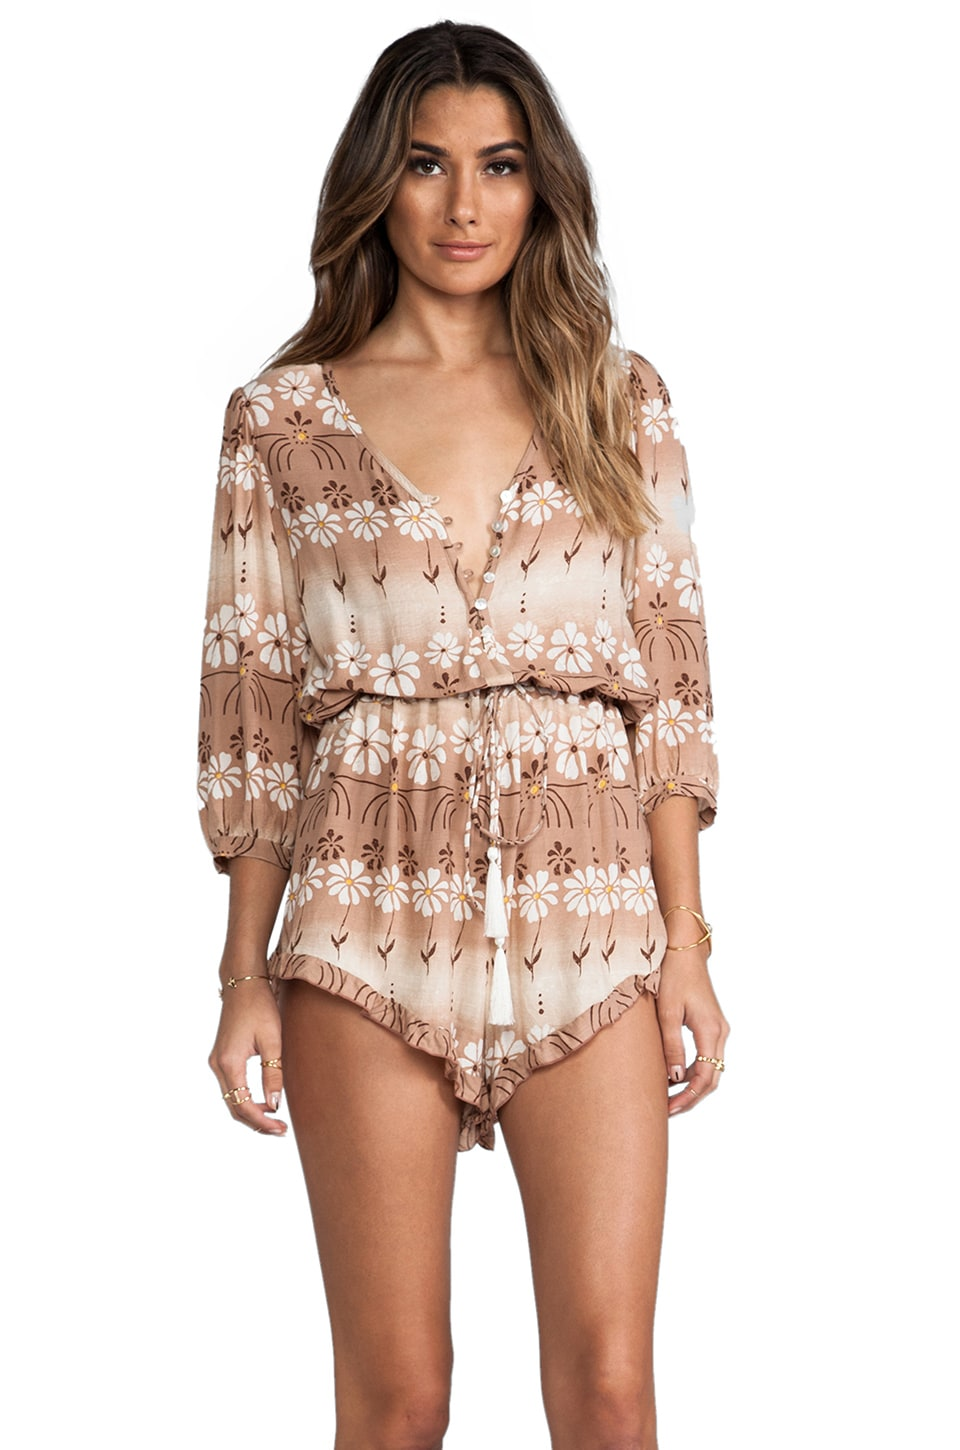 Spell & The Gypsy Collective The Daisy Chain Playsuit in Daisey Chain